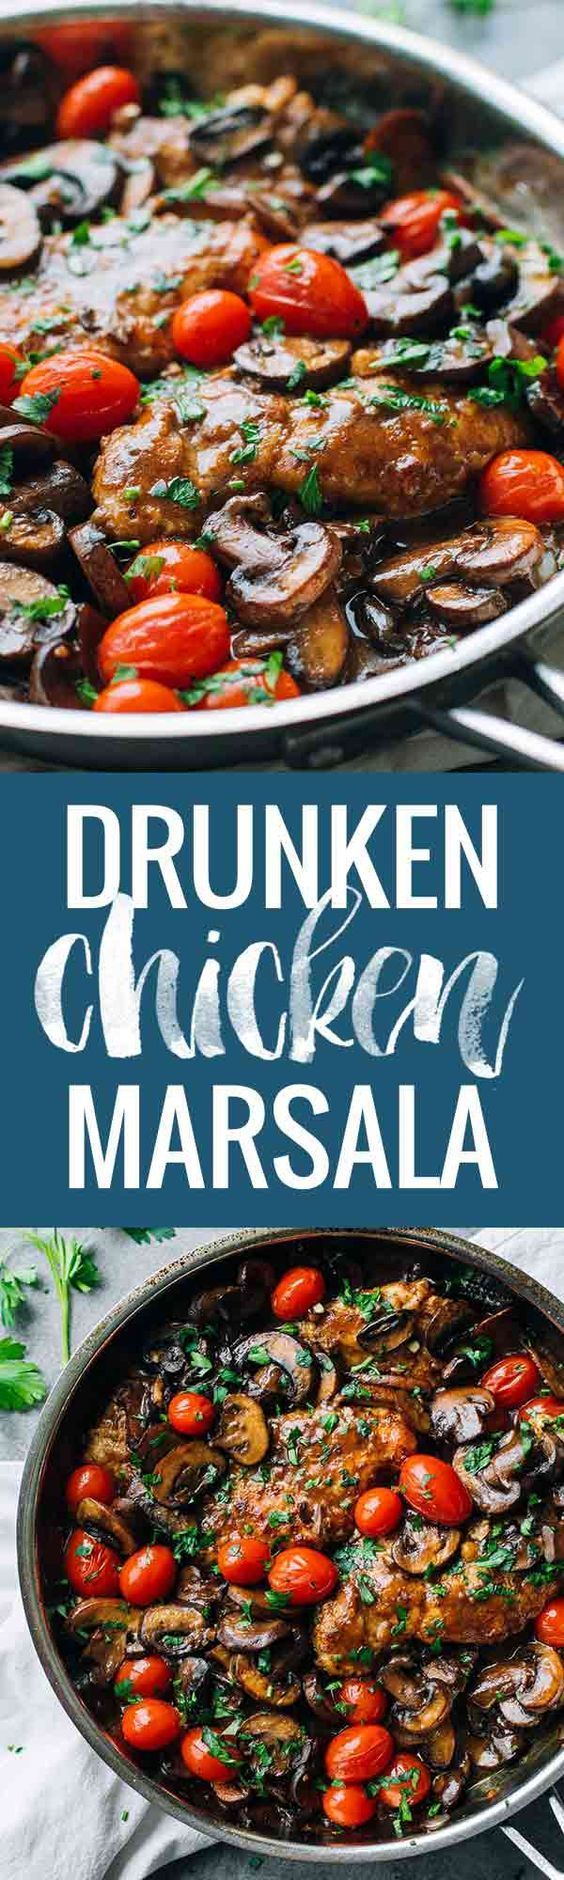 Drunken Chicken Marsala with Tomatoes - simple, gorgeously vibrant, and full of rich flavor. | pinchofyum.com